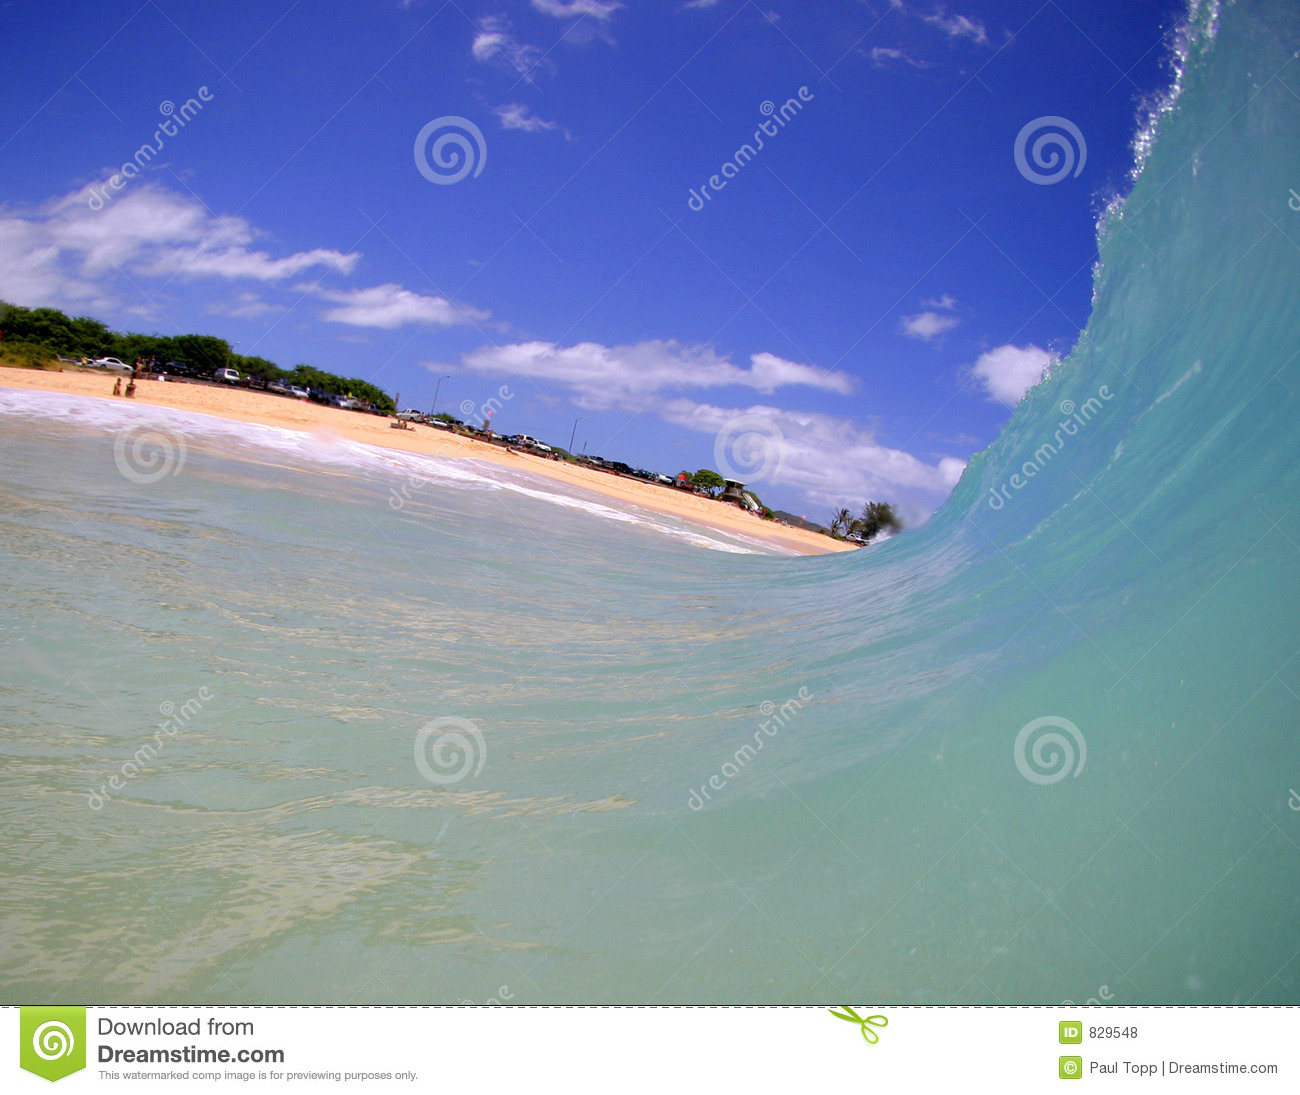 Wave of Blue Water Moves Towards the Beach